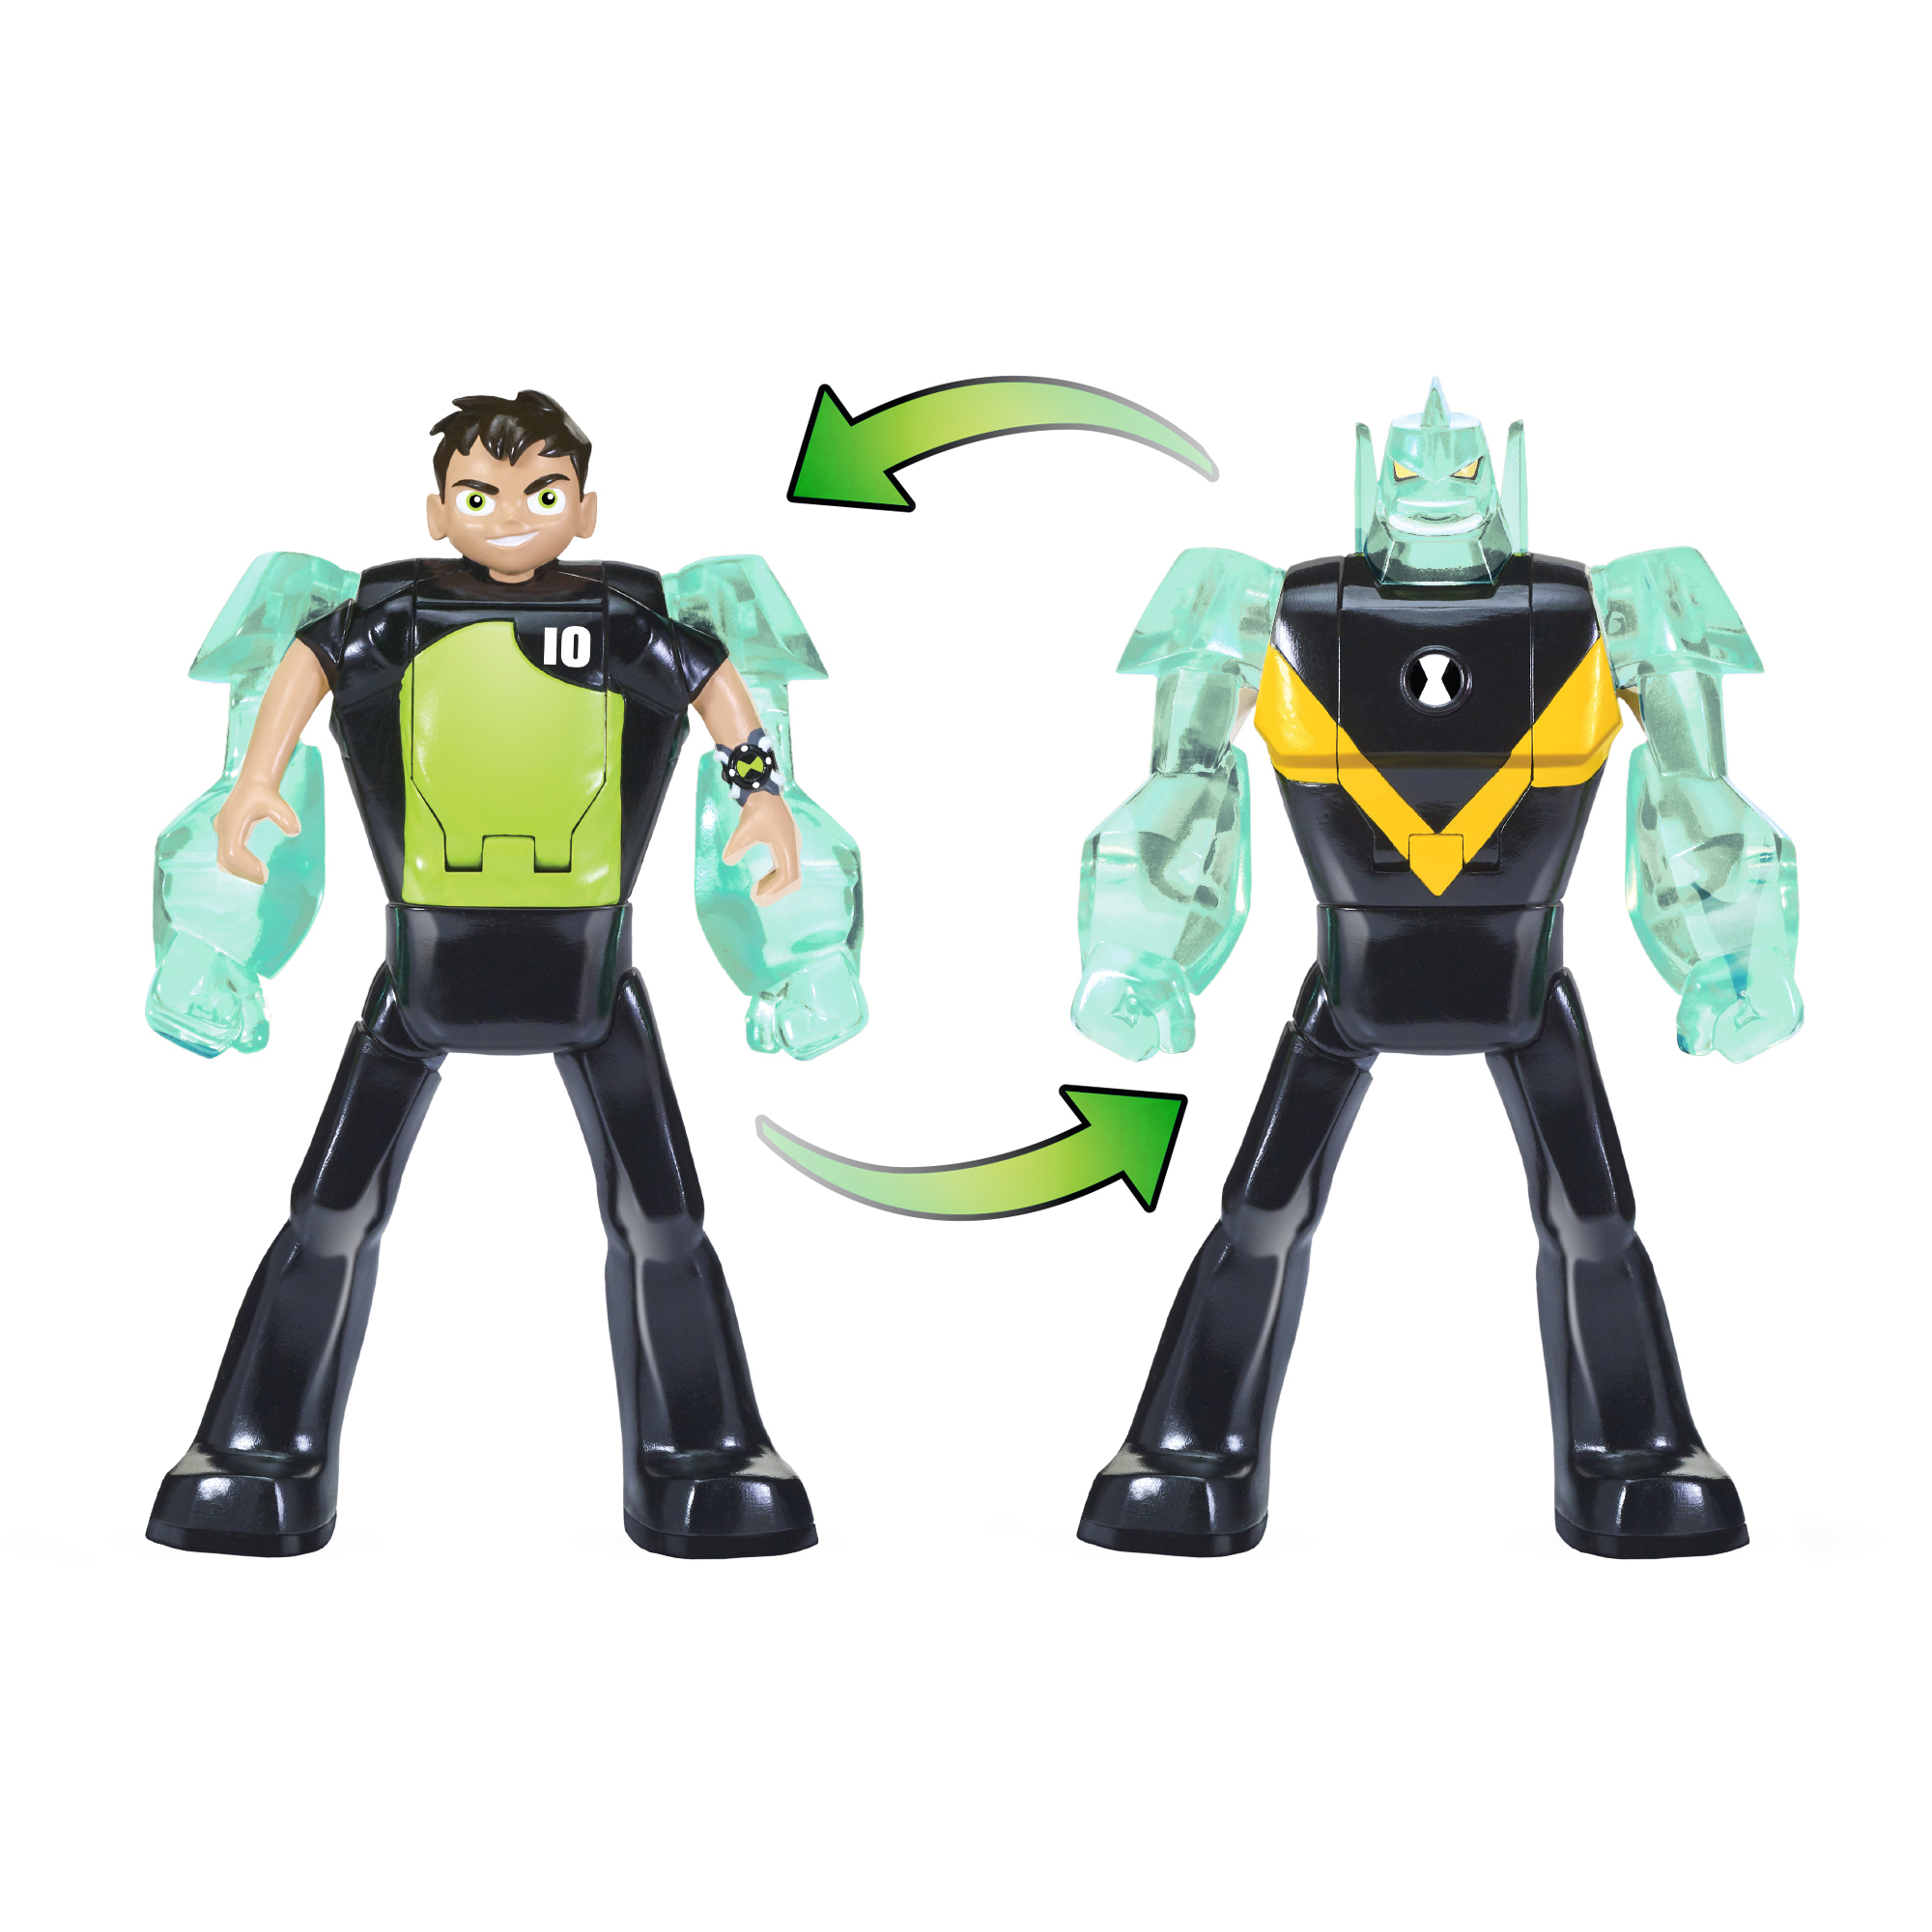 Ben 10 Ben-to-Diamondhead Transforming Figure